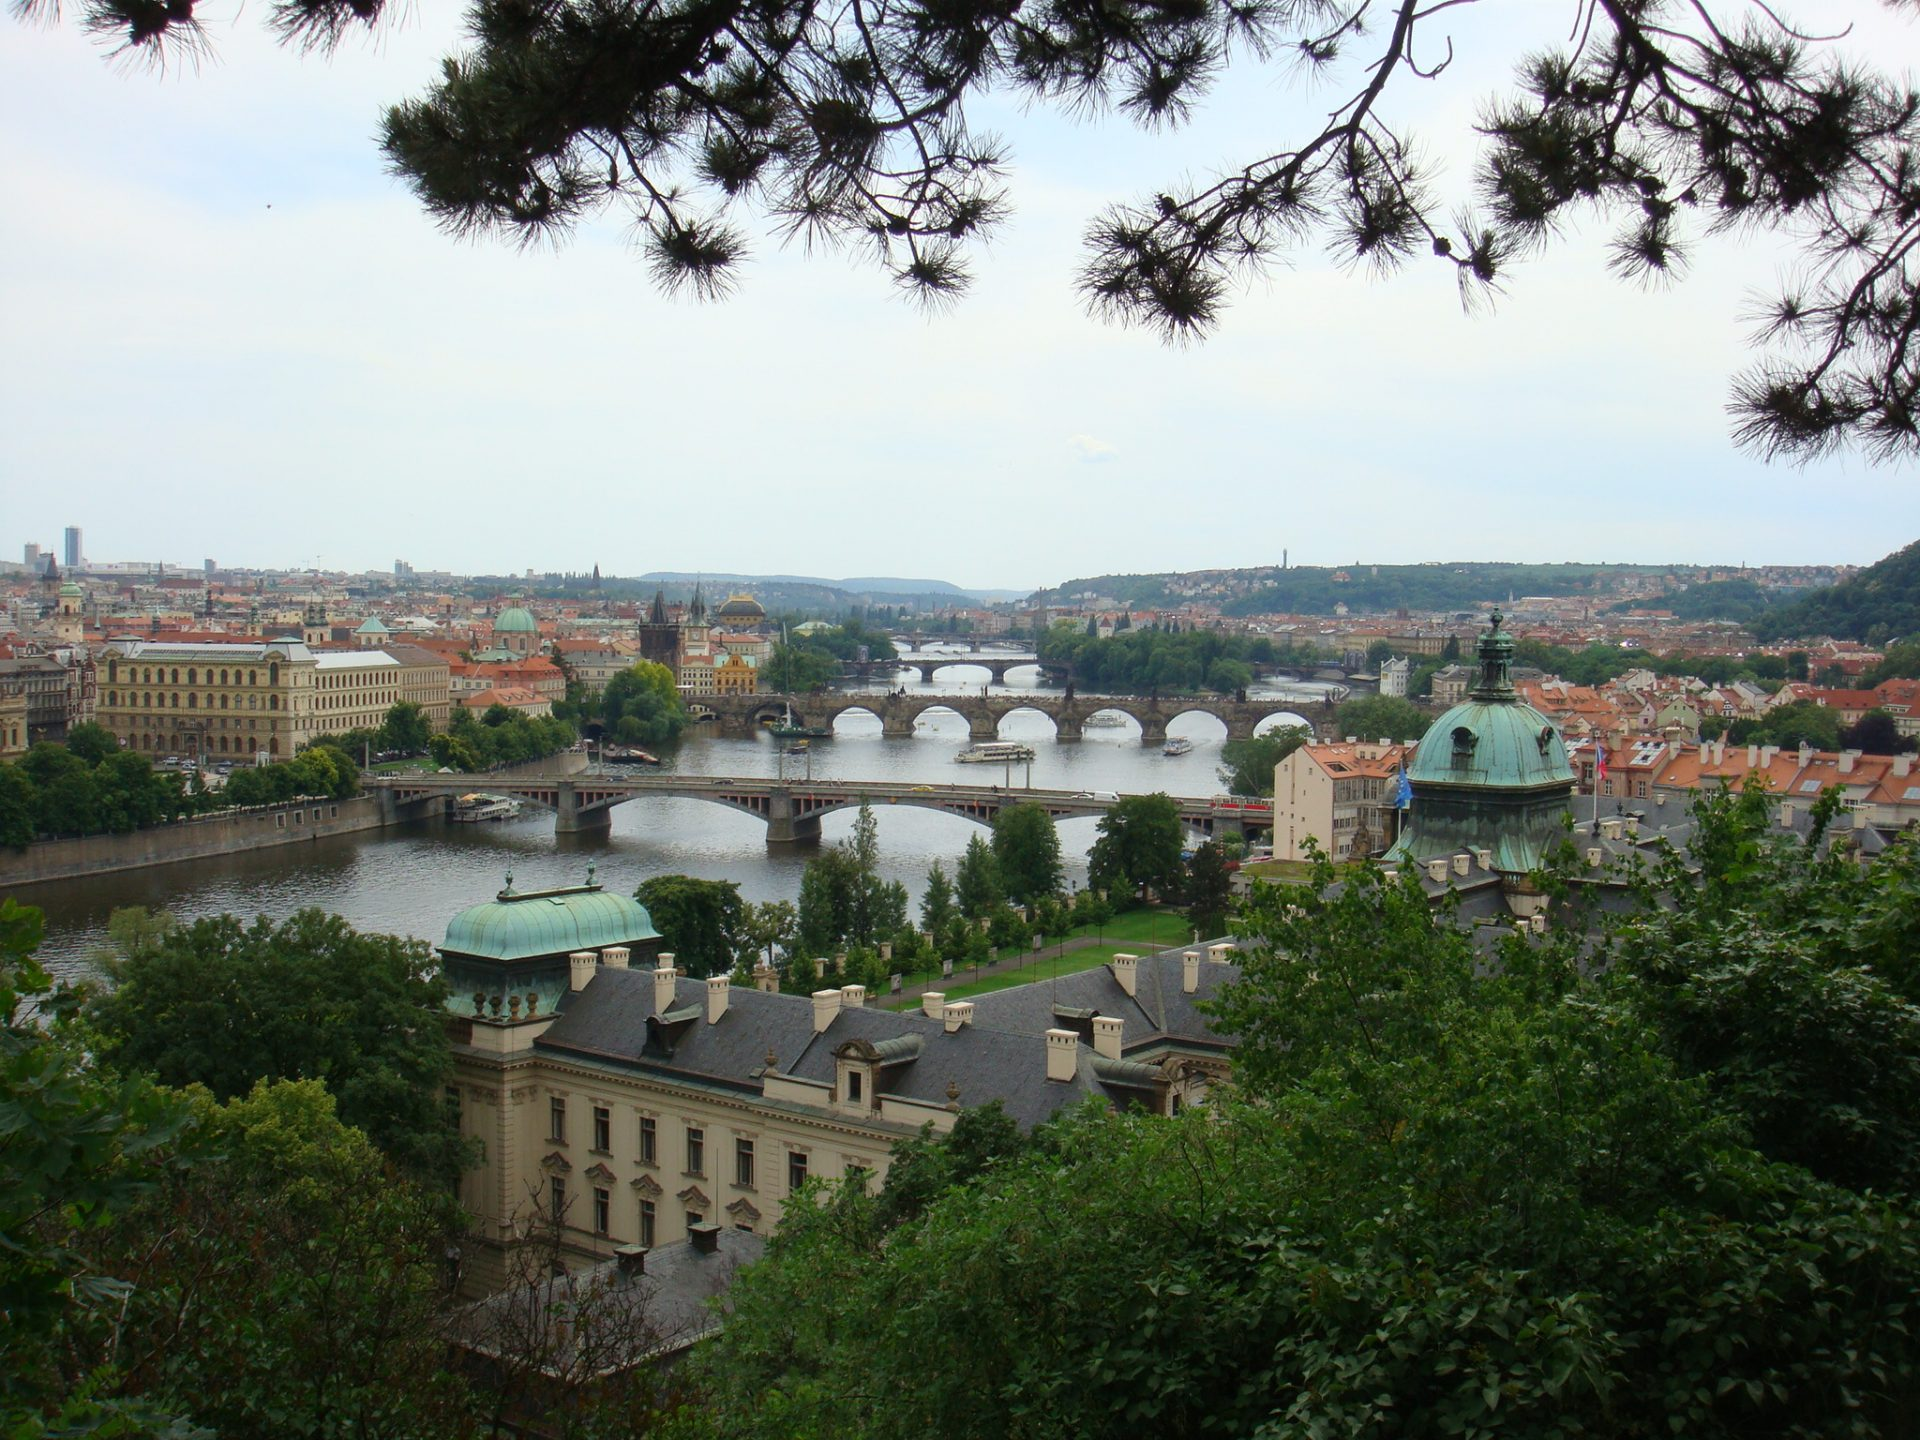 River Vltava from the Palace Gardens